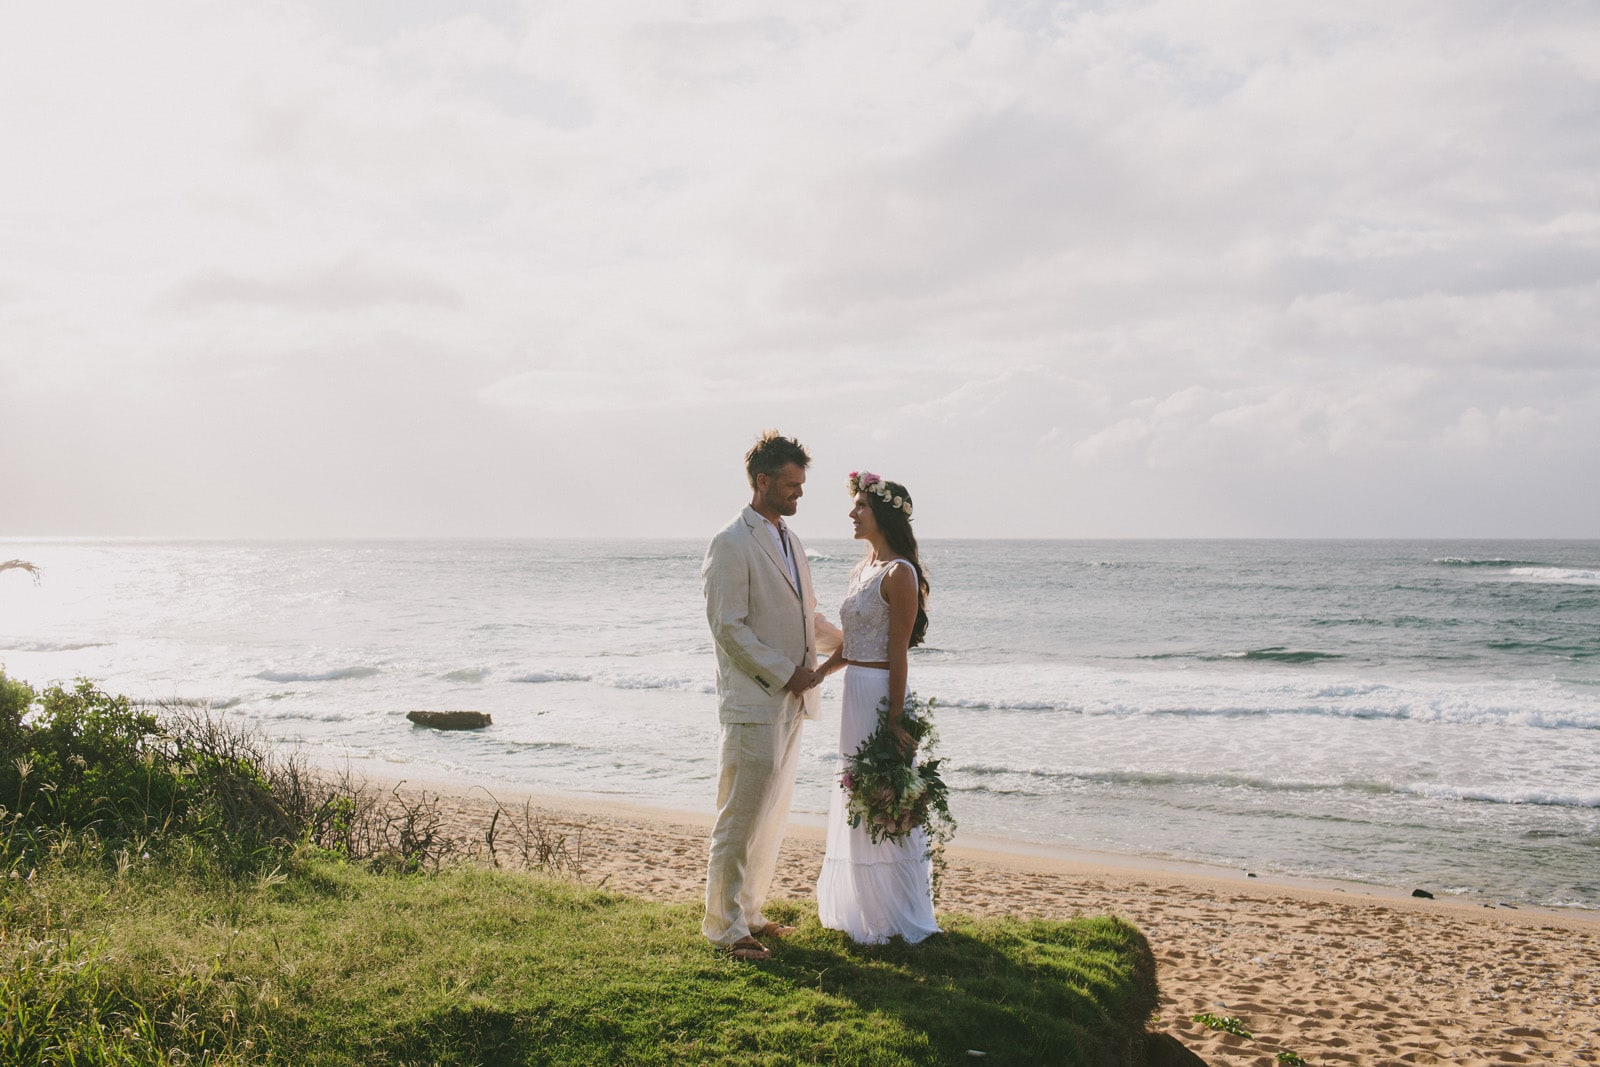 Maui_Wedding_Wailea_Kapalua_Hawaii_Photographer_002